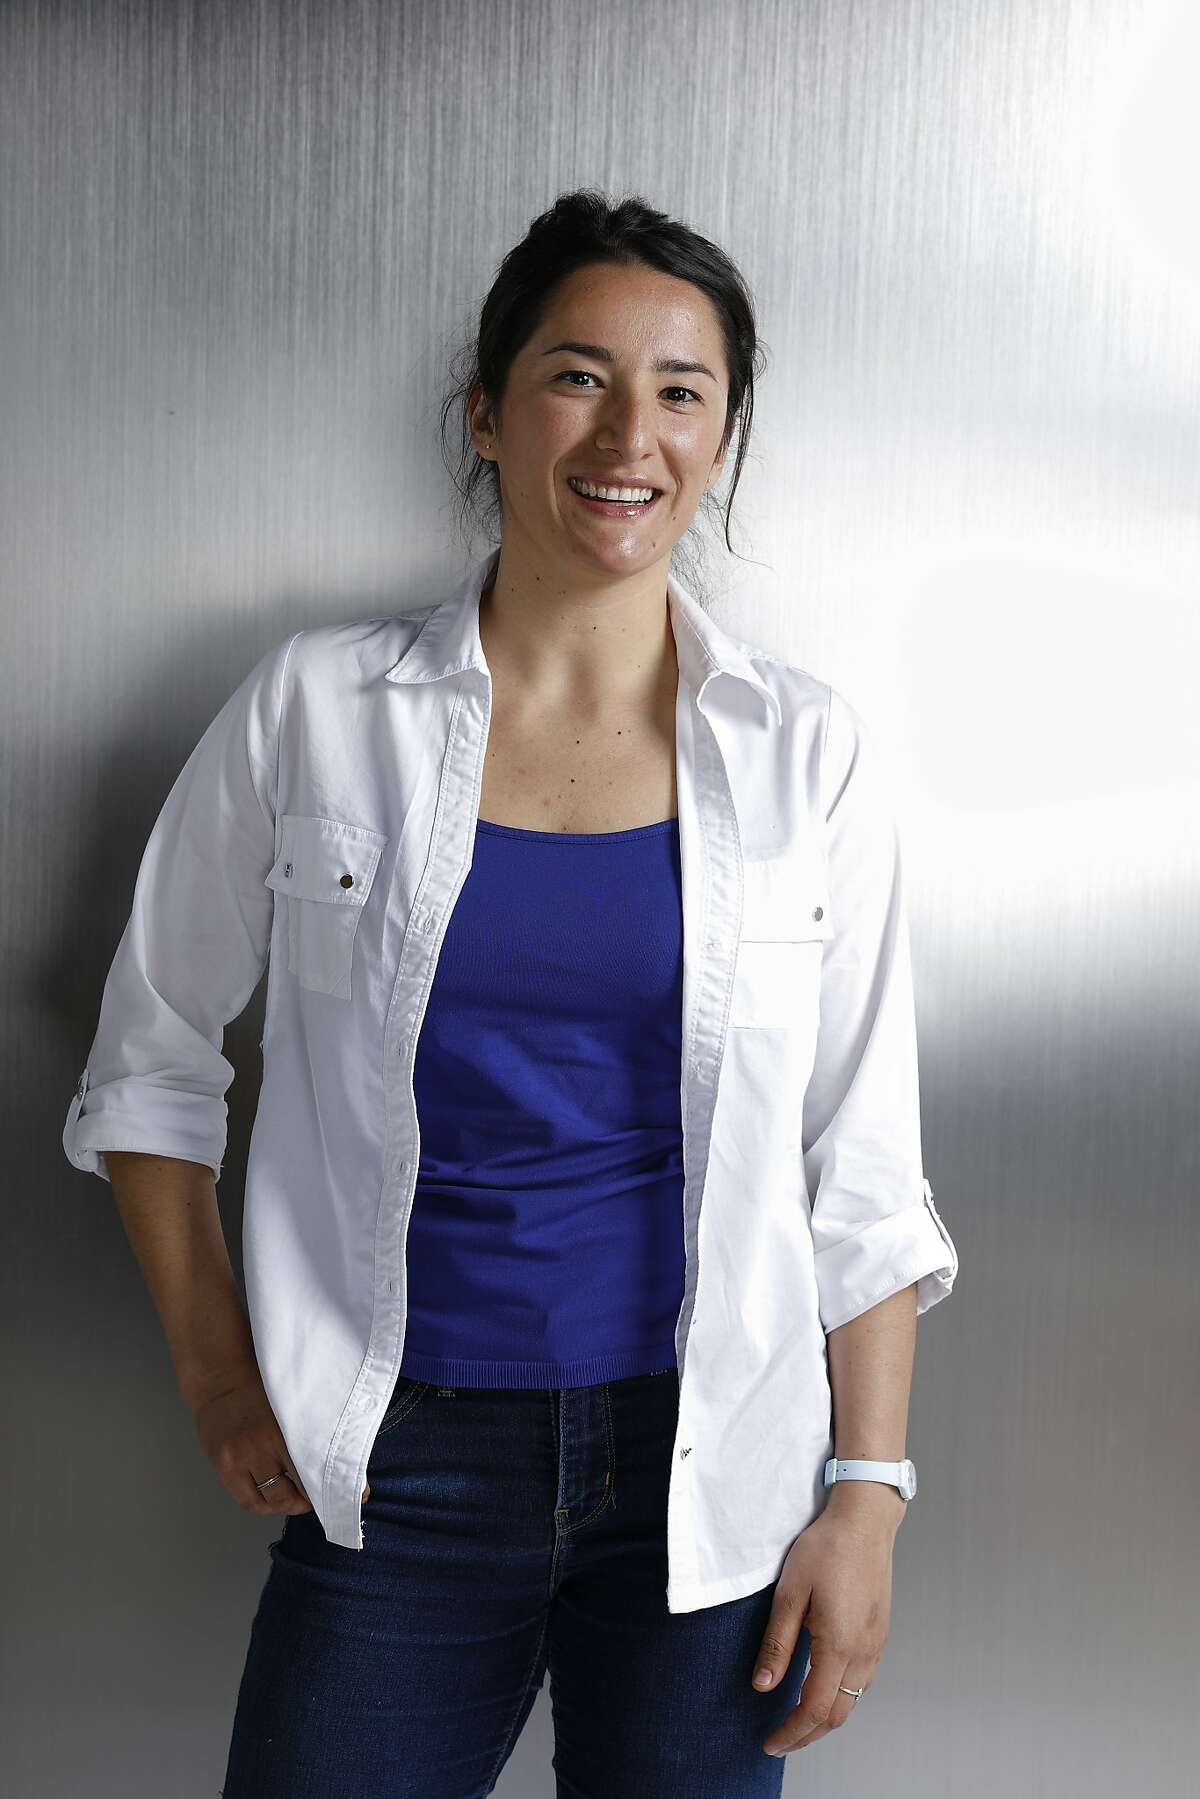 Chef Michelle Minori of Barzotto is seen on Monday, April 17, 2017 in San Francisco, Calif. Minori will compete on the 16th season of Bravo's